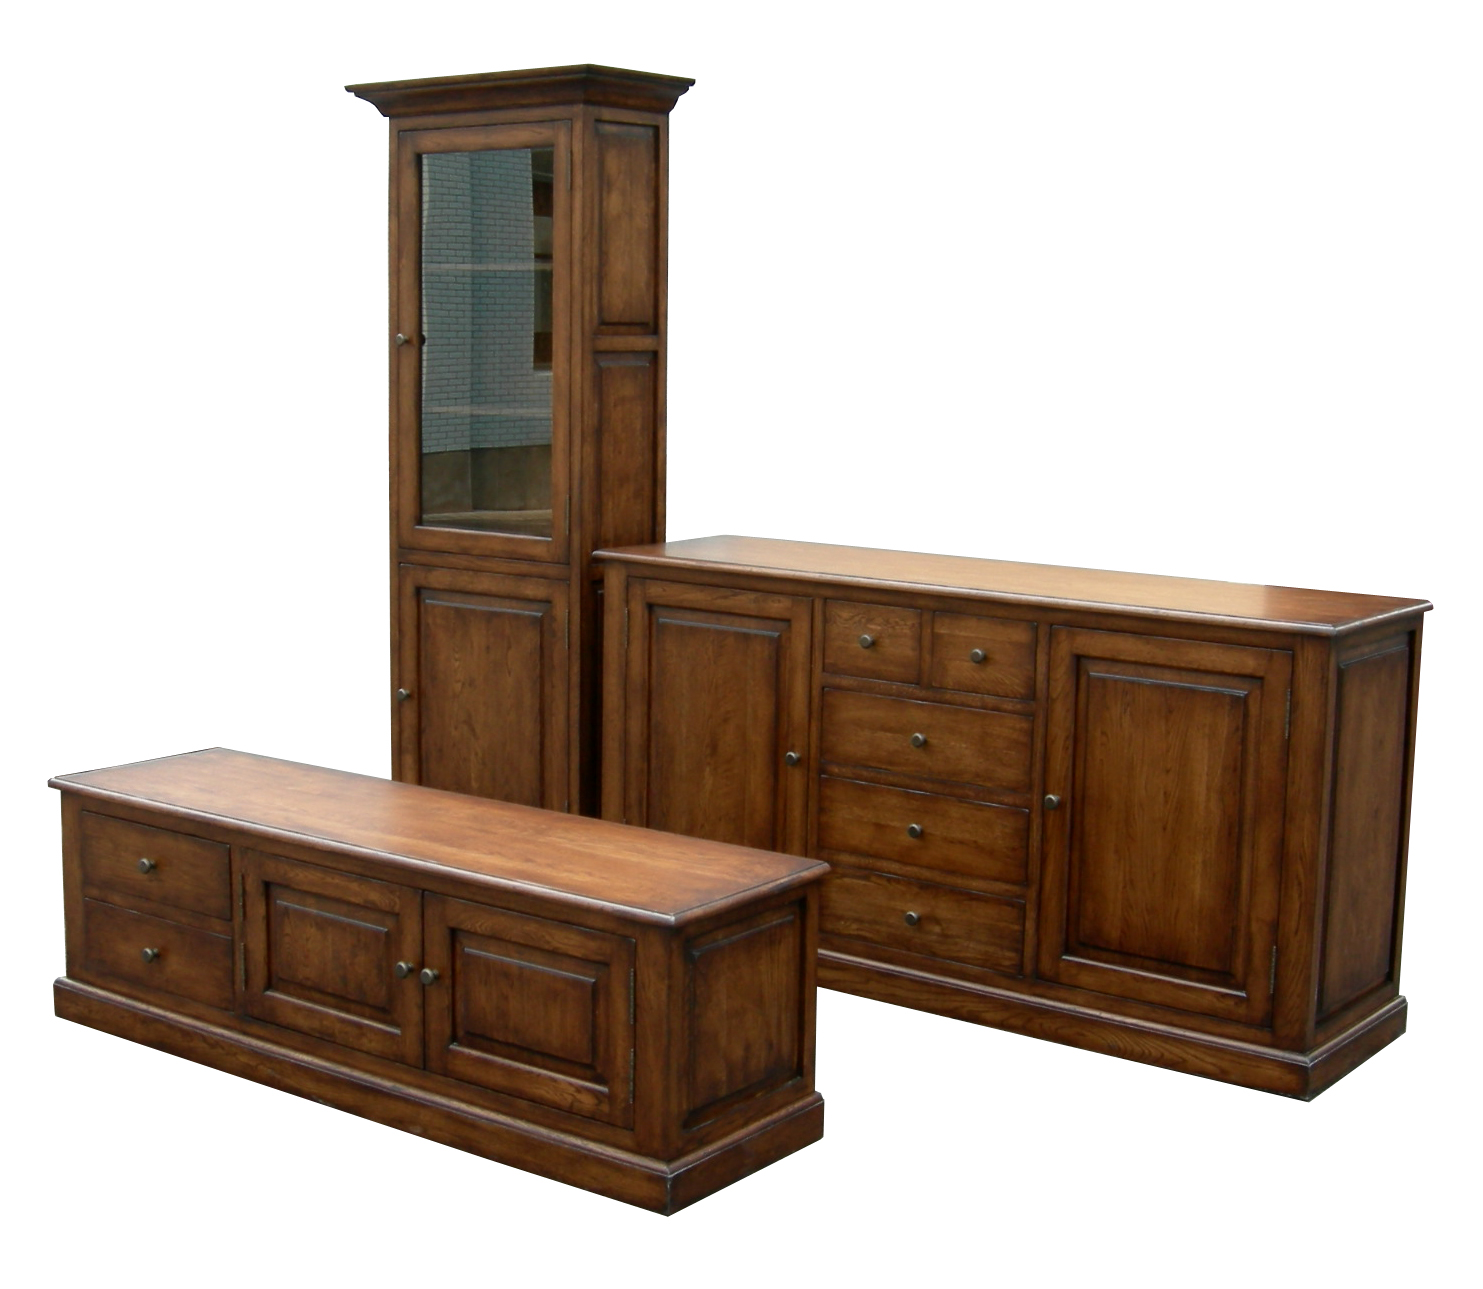 Wooden furniture designs wooden furniture shops in for Furniture furniture